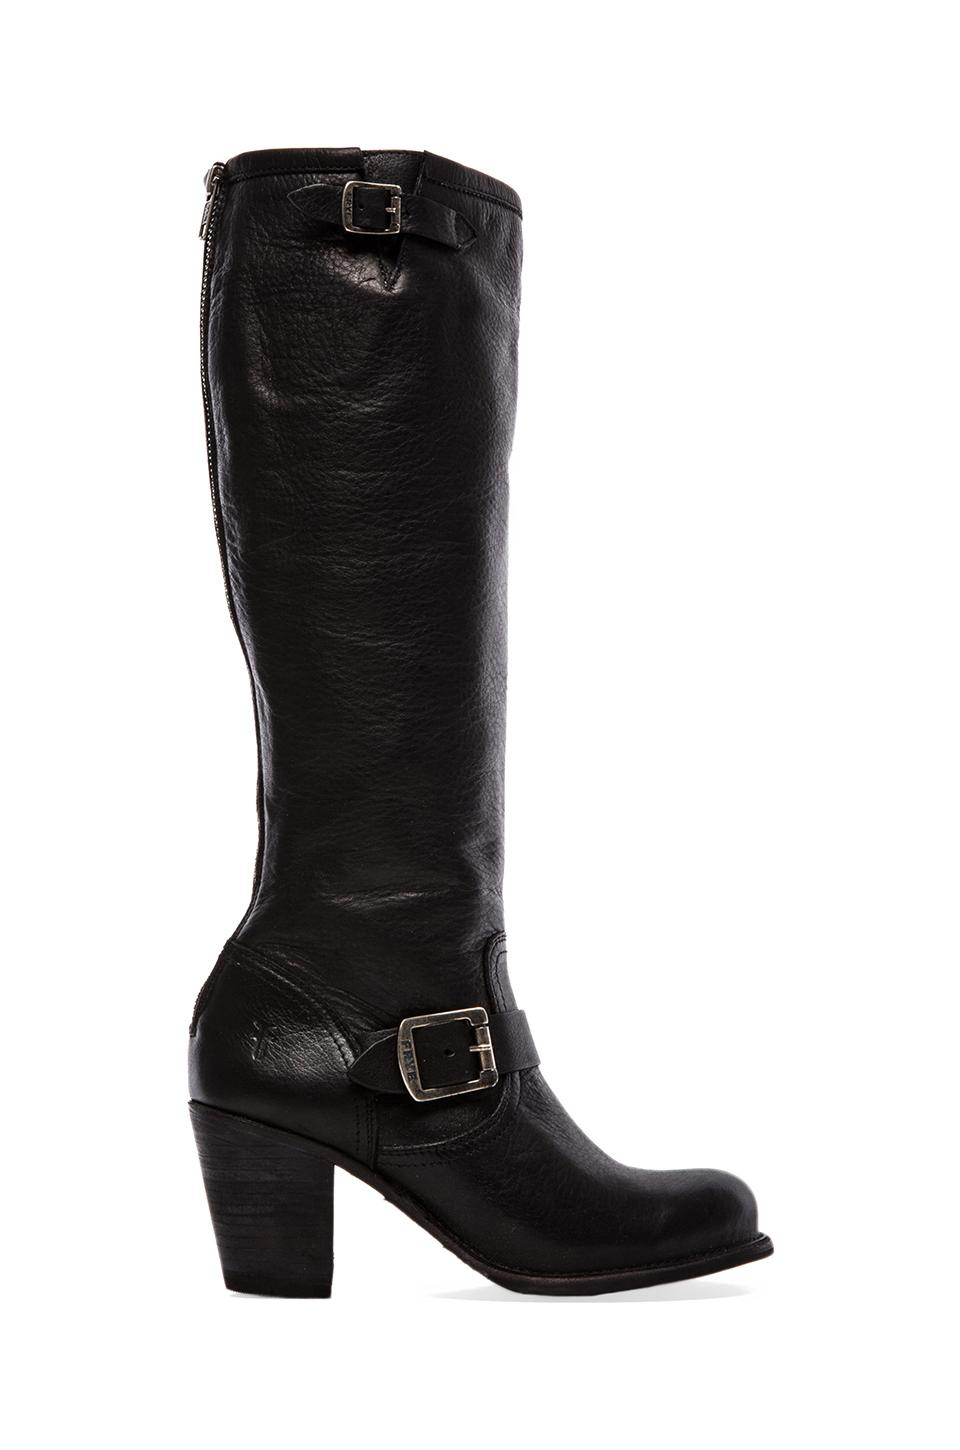 Frye Karla Engineer Tall in Black